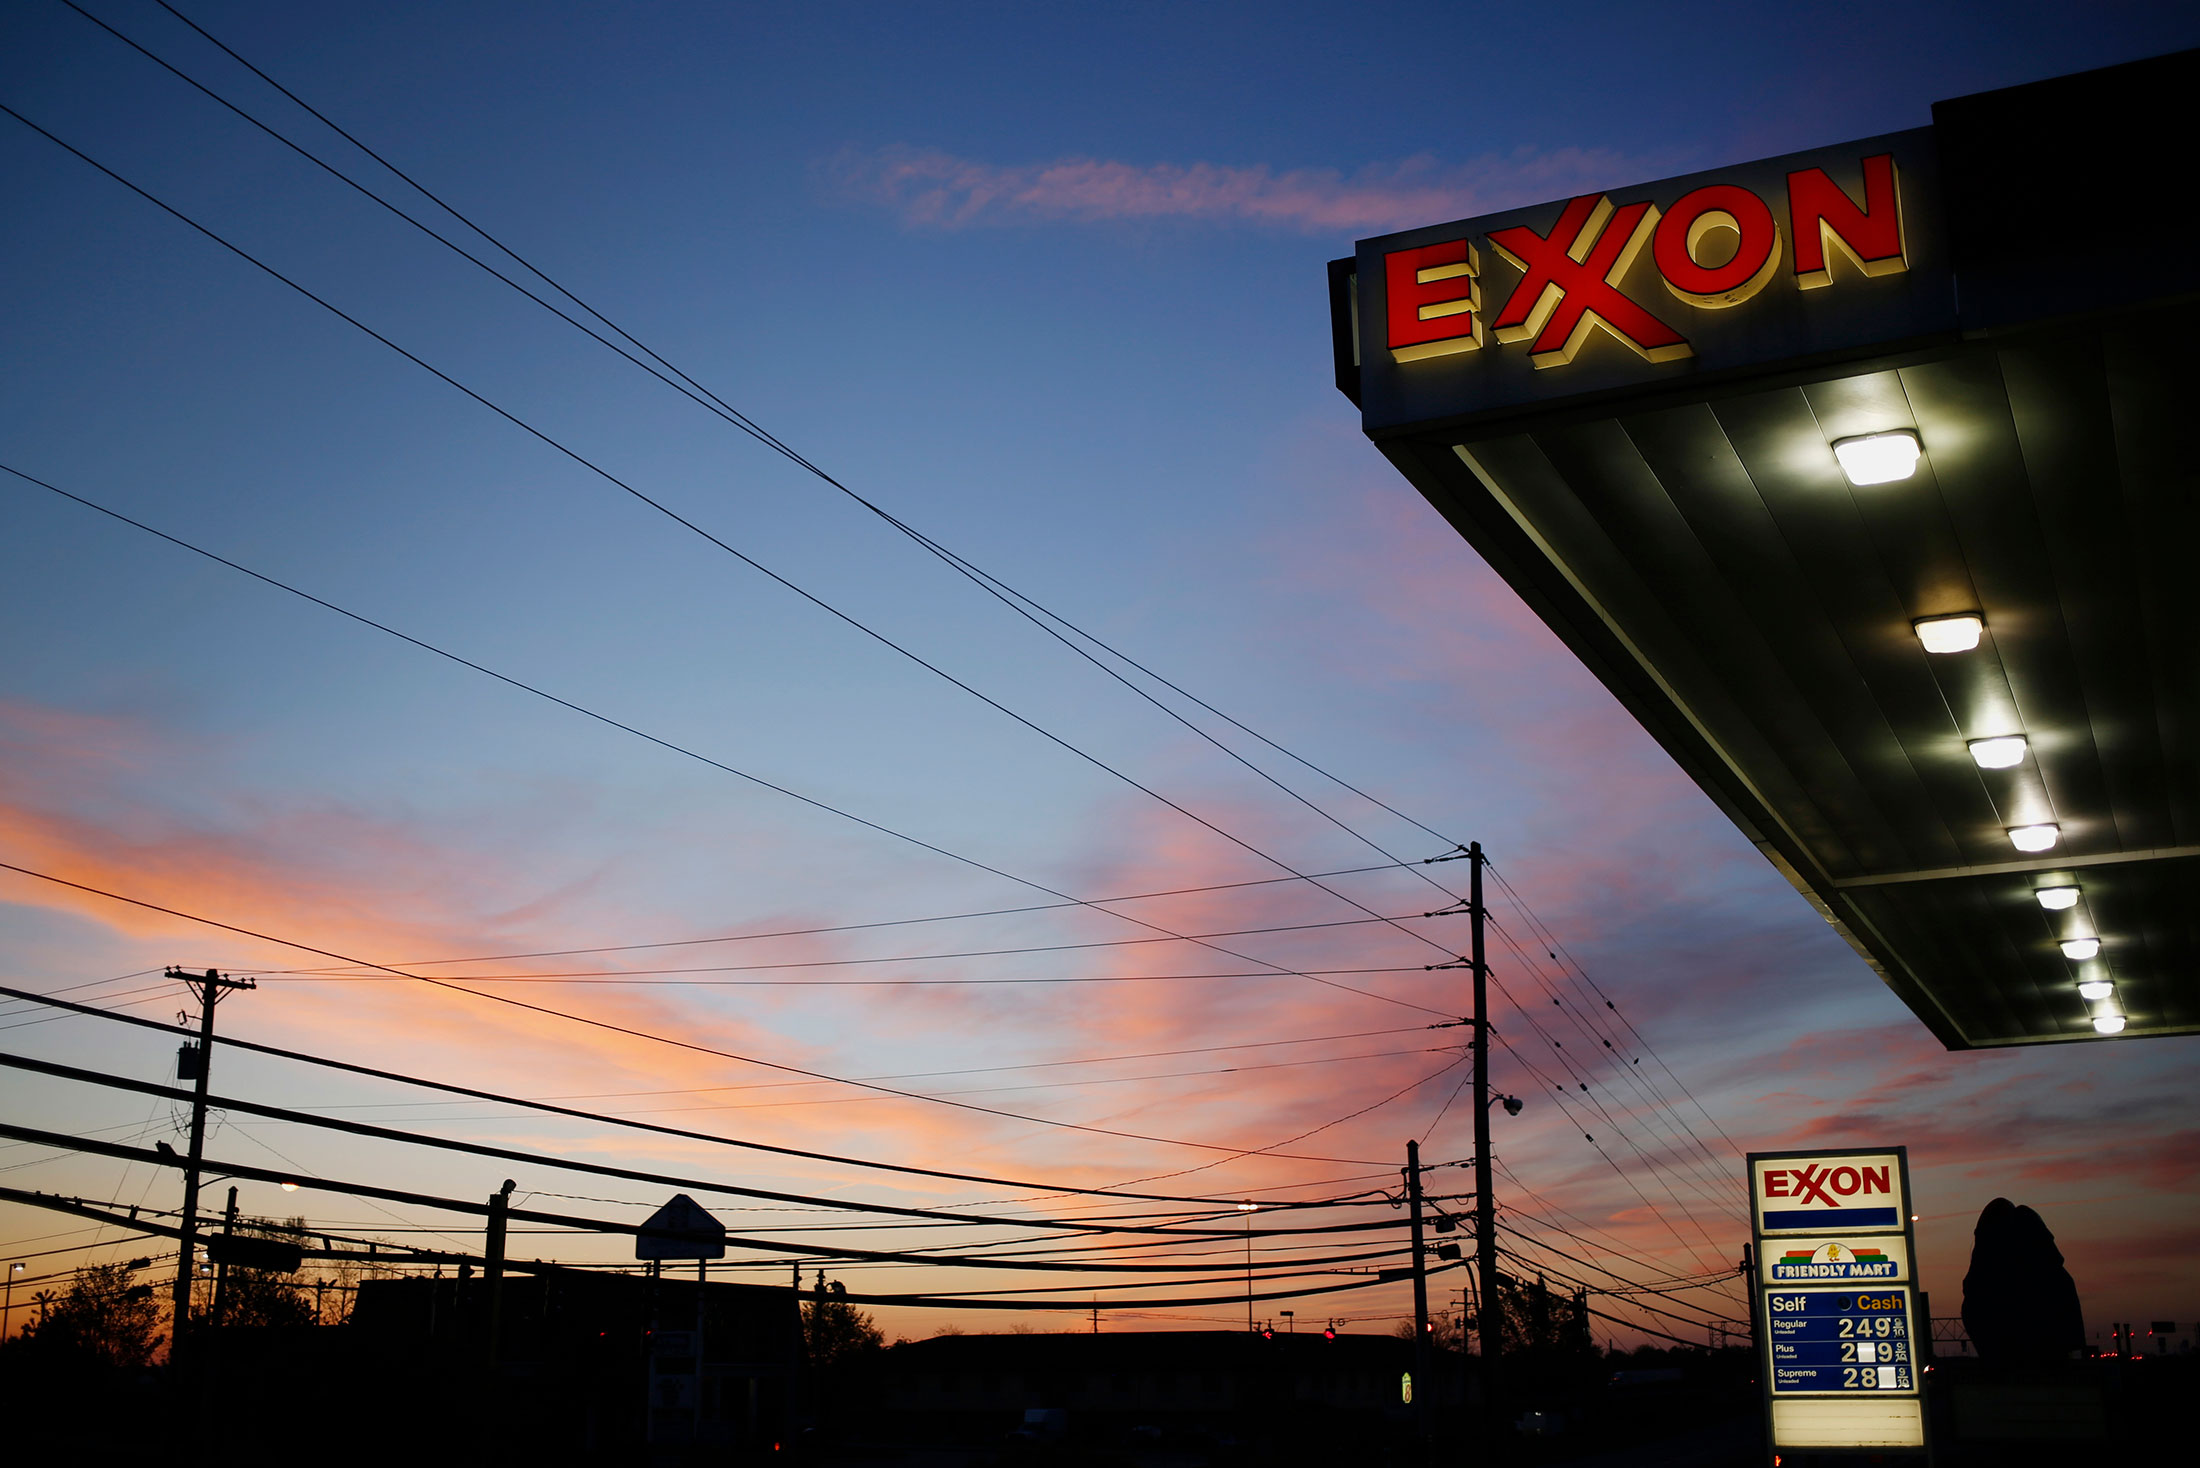 Exxon chooses war against climate change investigation